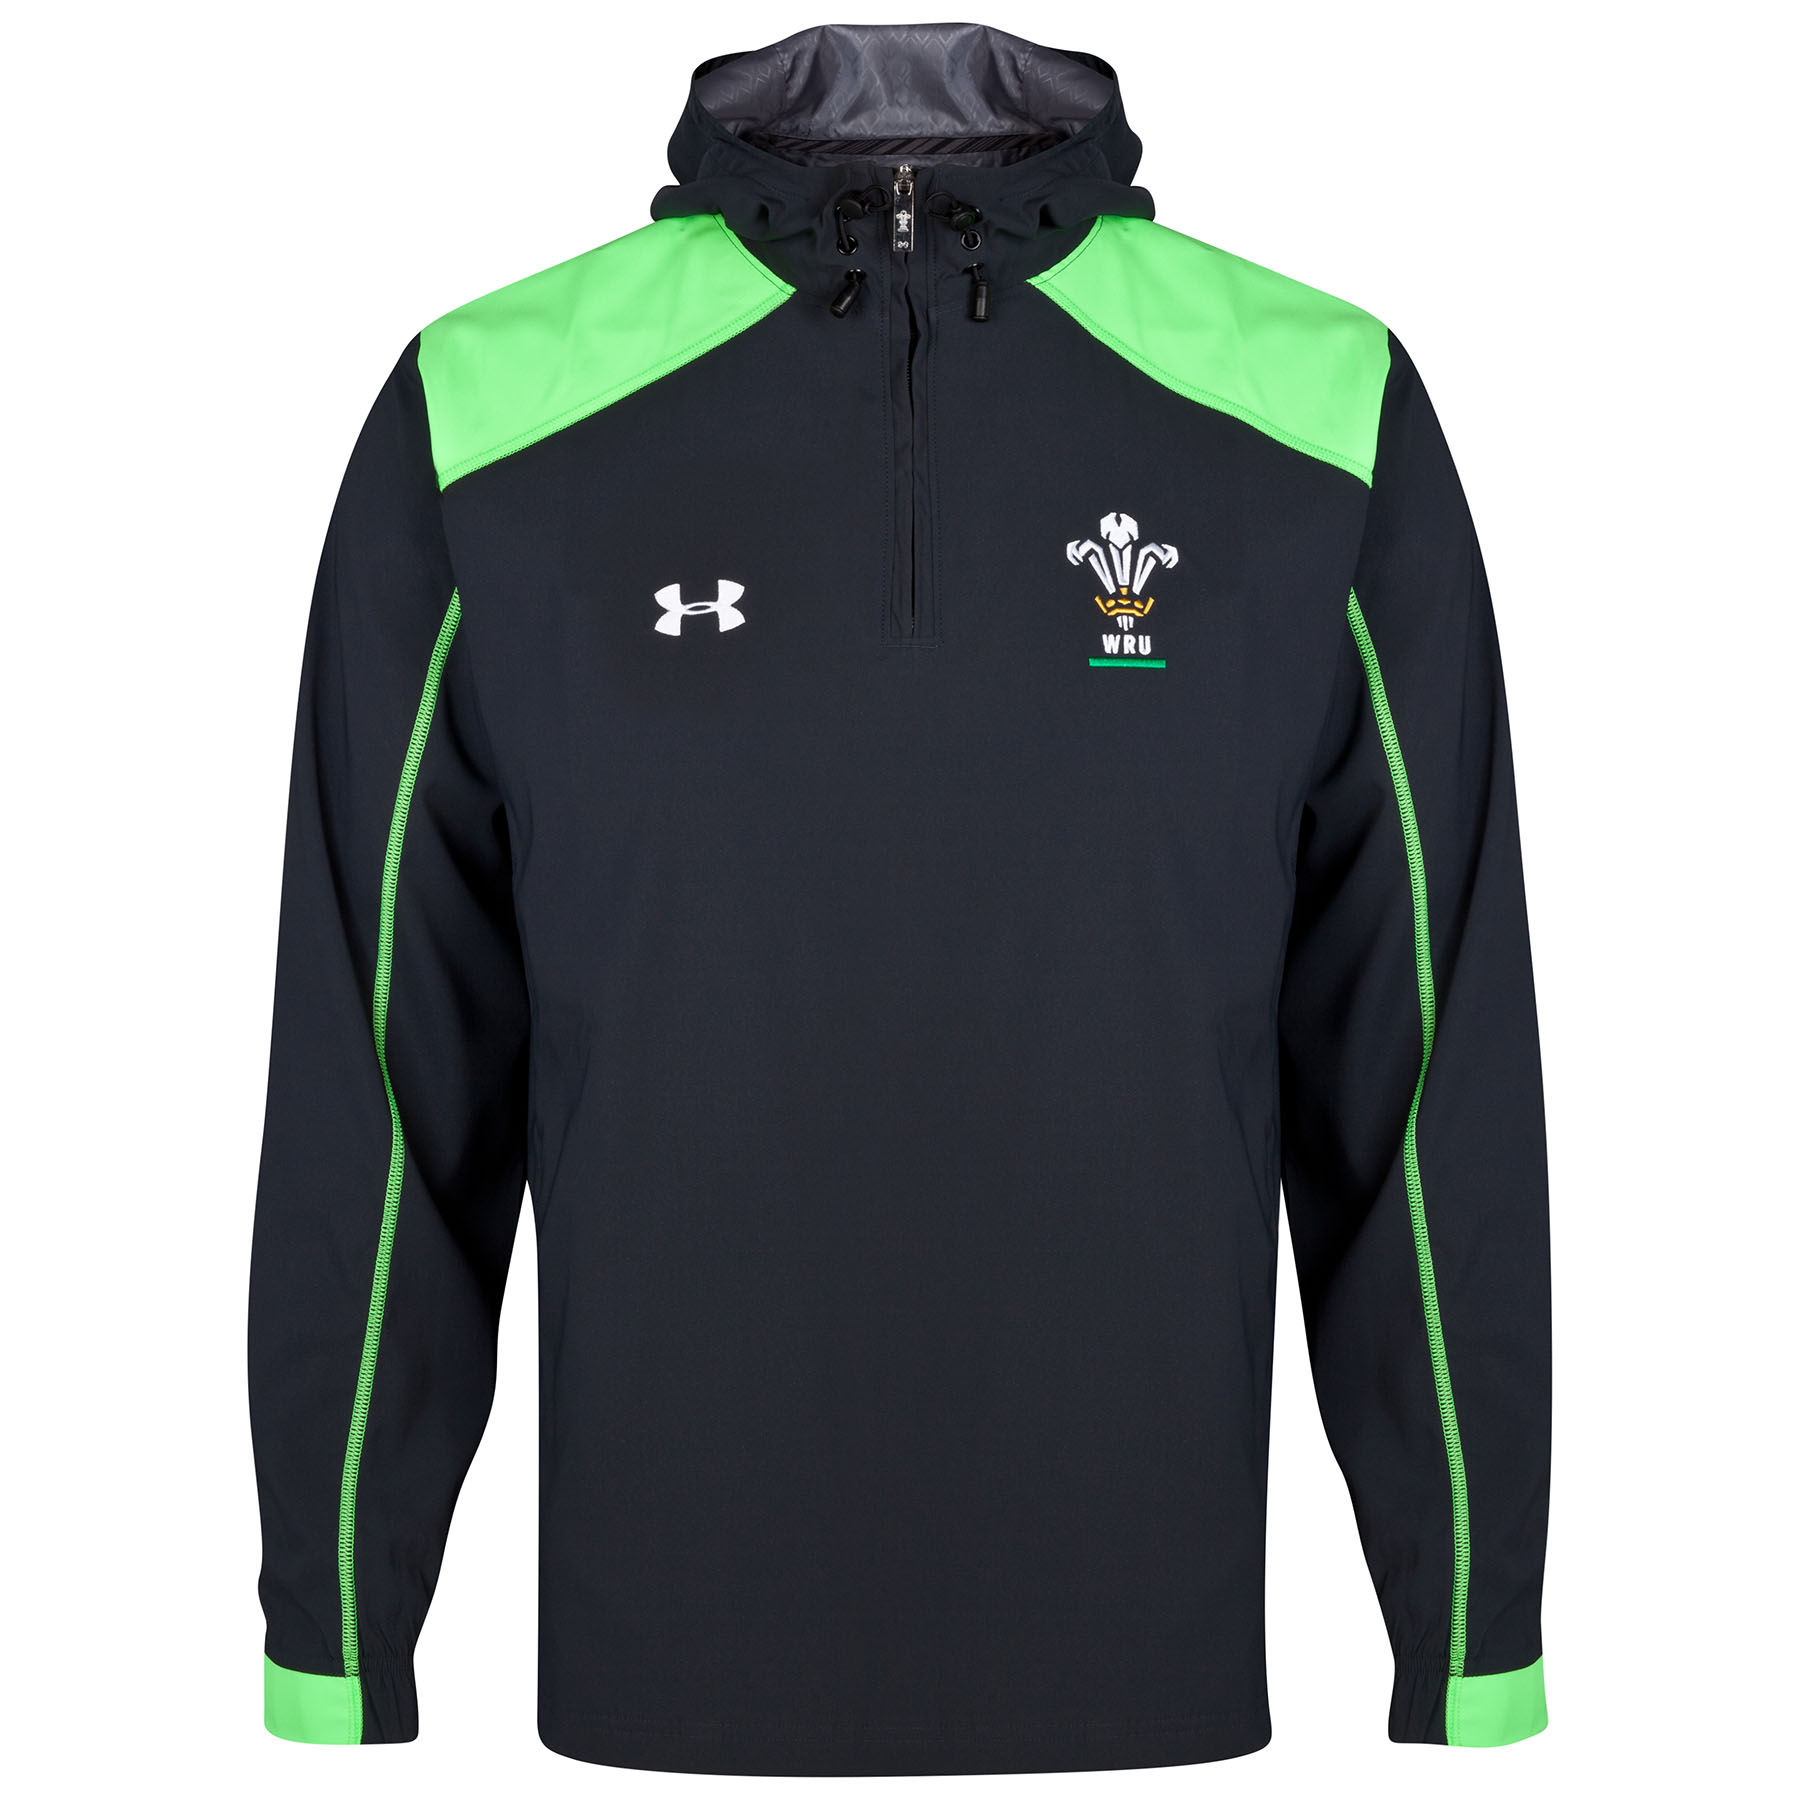 Wales Rugby Union Supporters Training Jacket 2014/15 Black